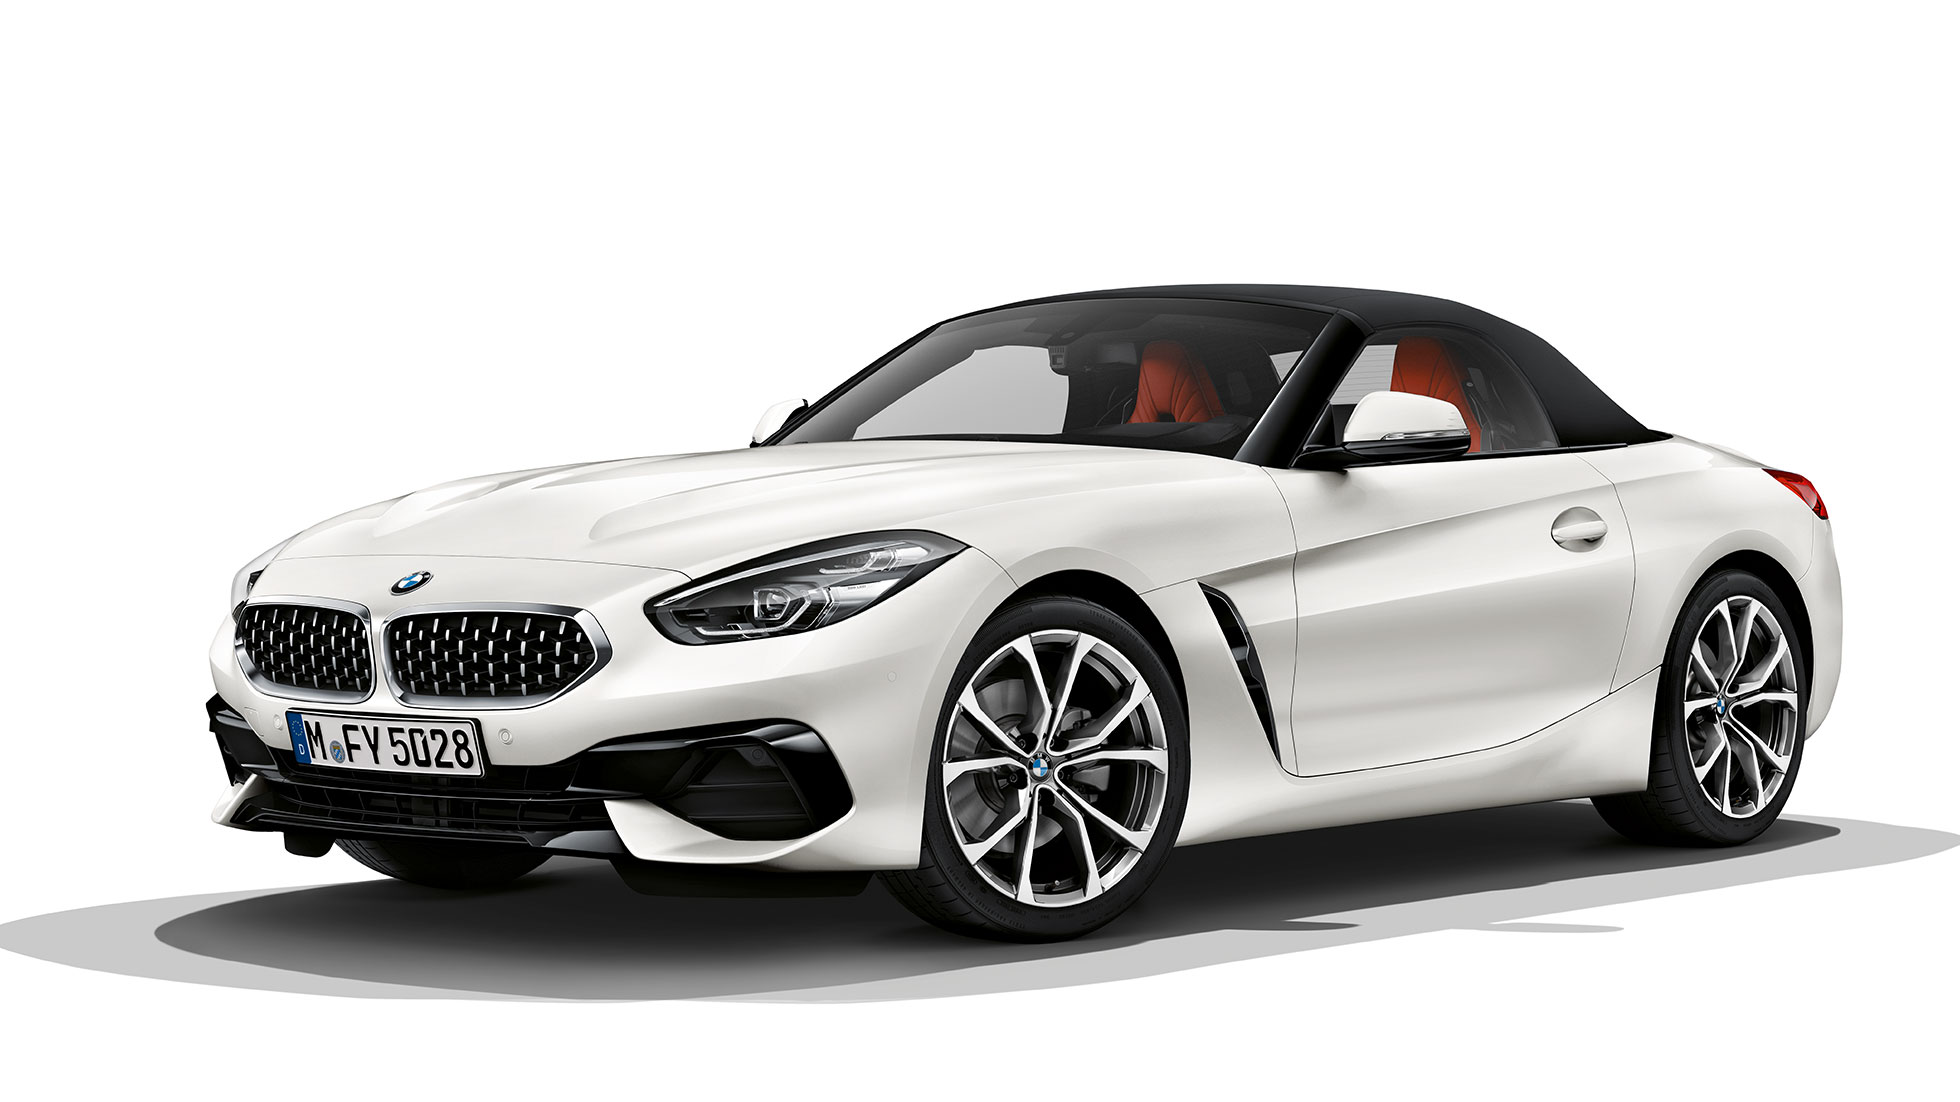 BMW Z4 Roadster: information and details